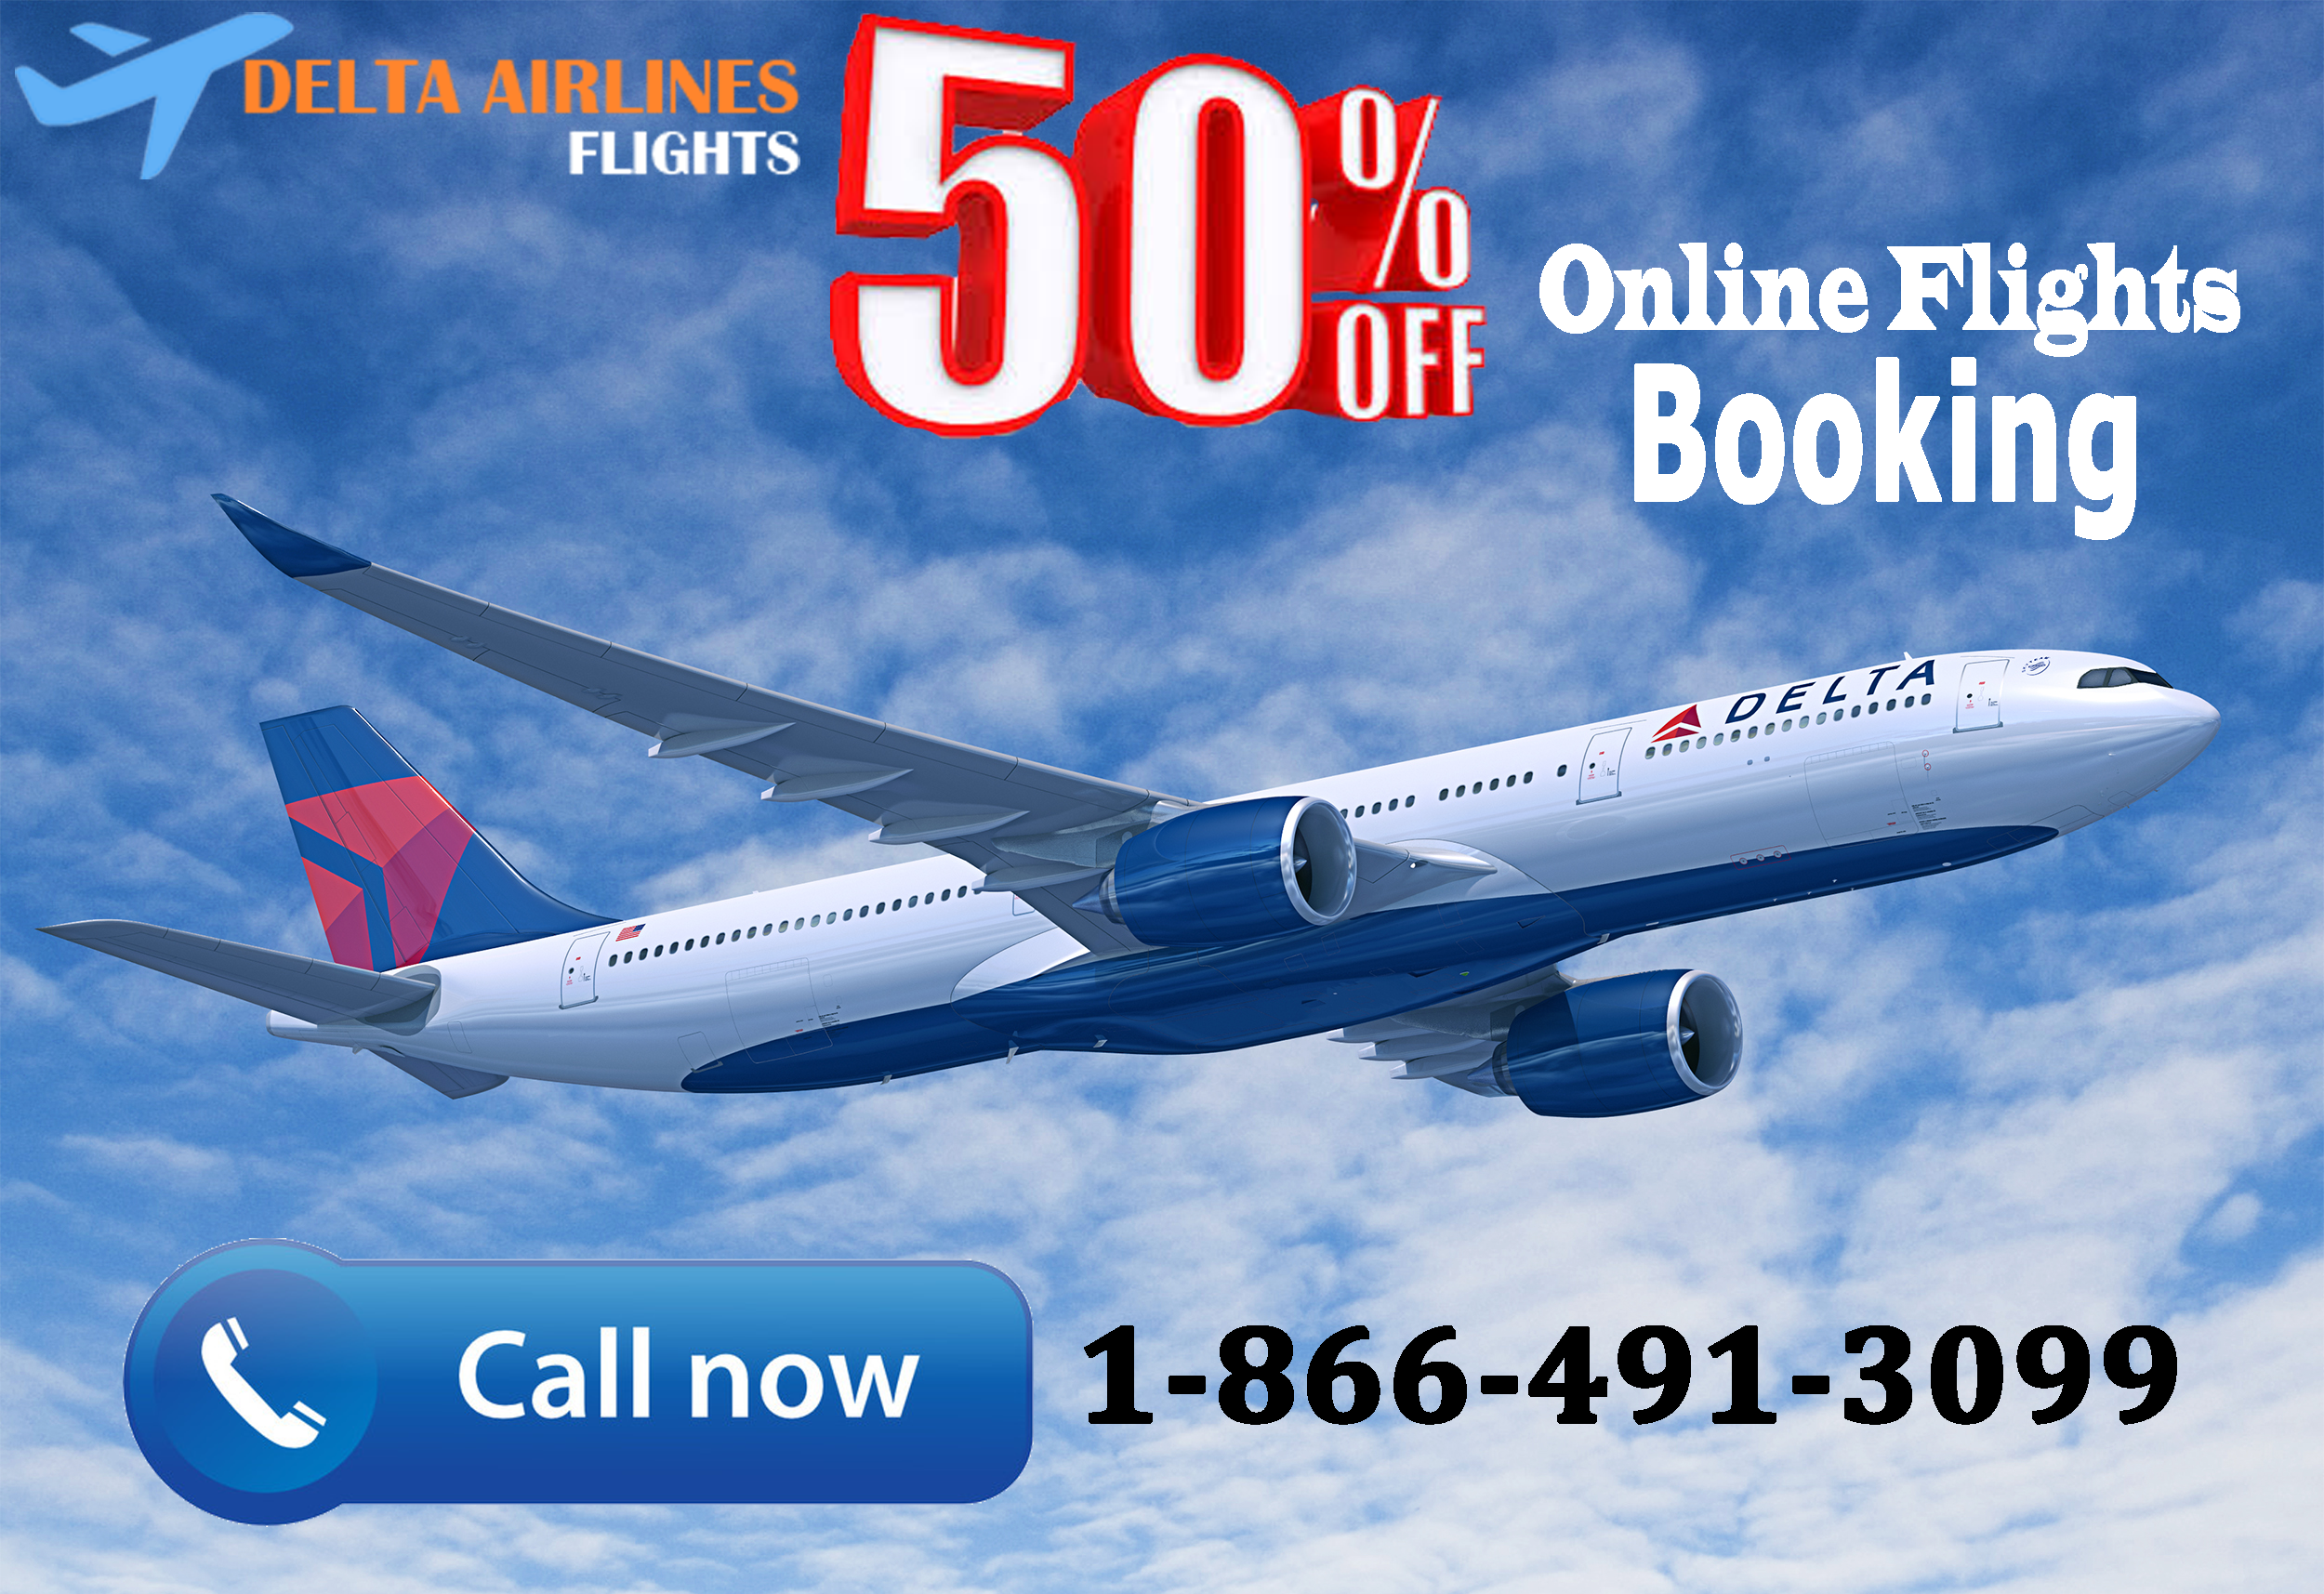 Prior to you go ahead and book Delta Airlines Flights to